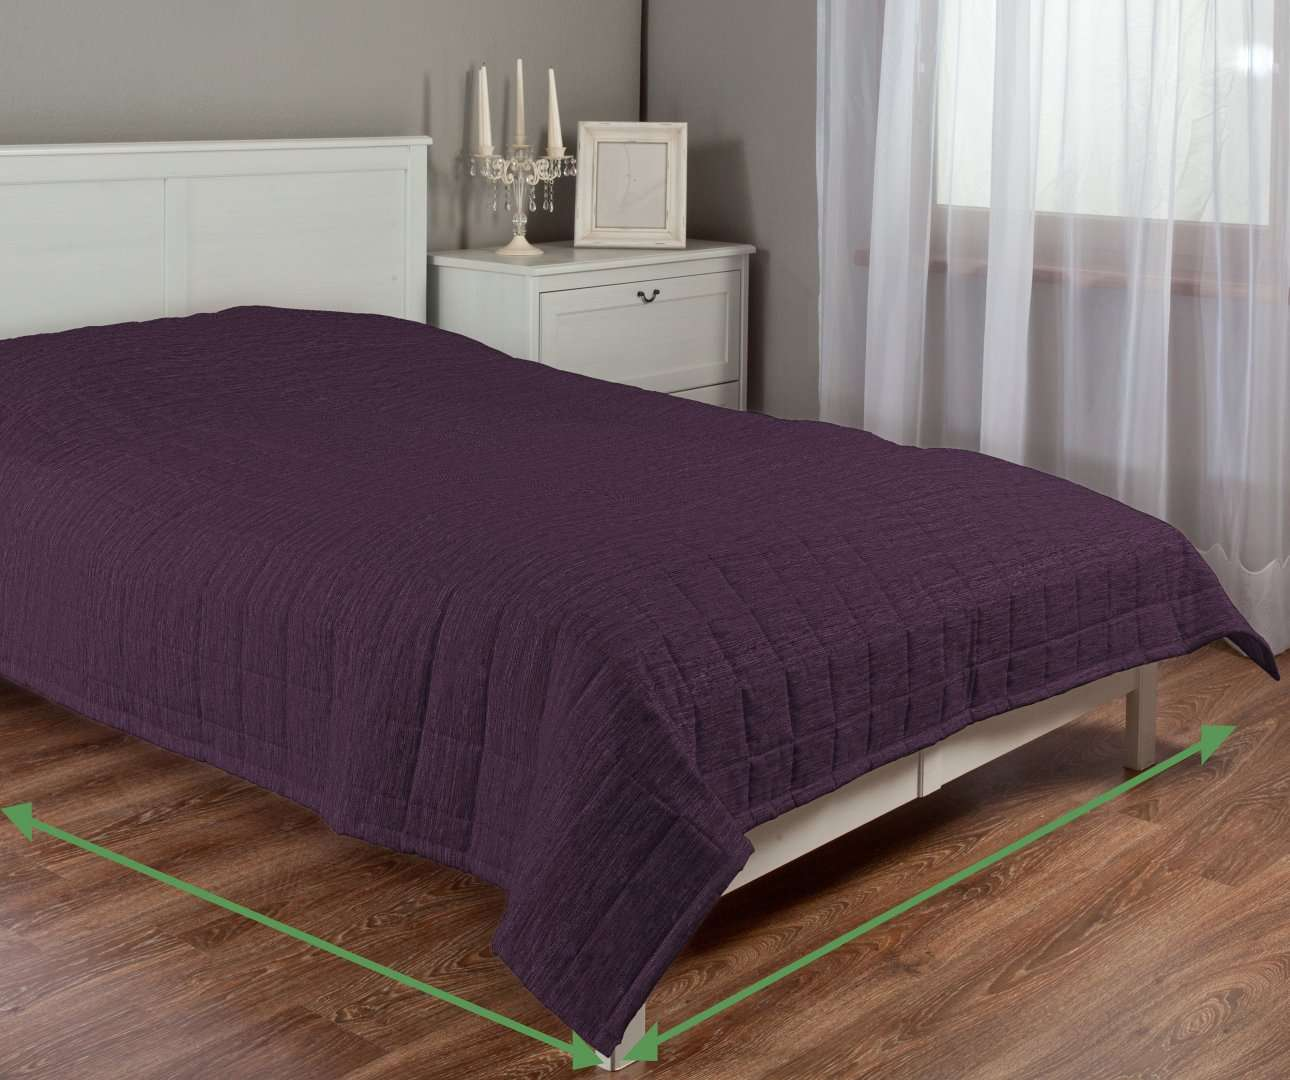 Quilted throw (check quilt pattern) in collection Chenille, fabric: 160-46